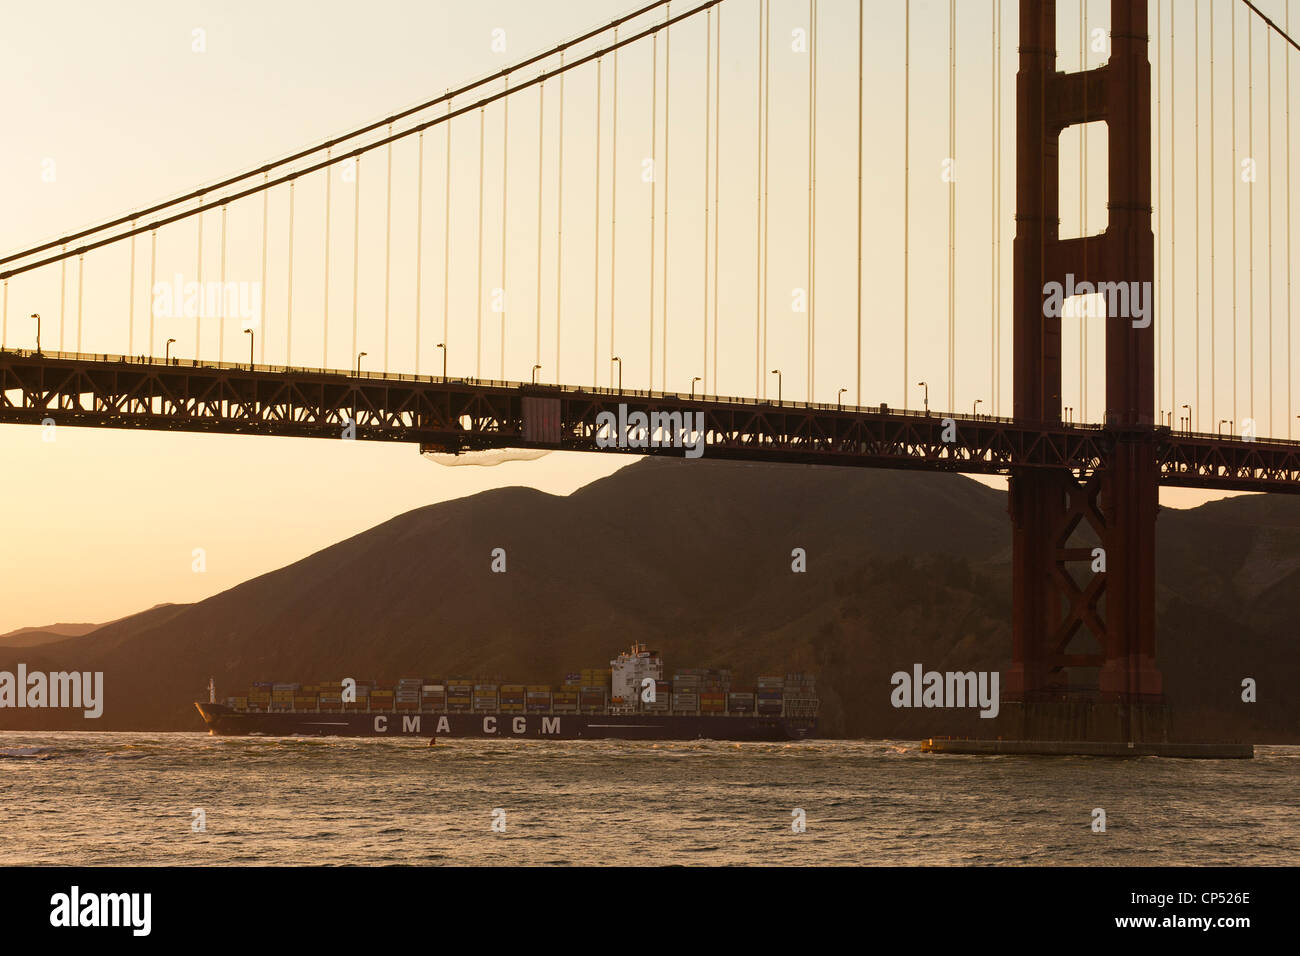 A CMA CGM shipping vessel leaves the San Francisco bay - Stock Image